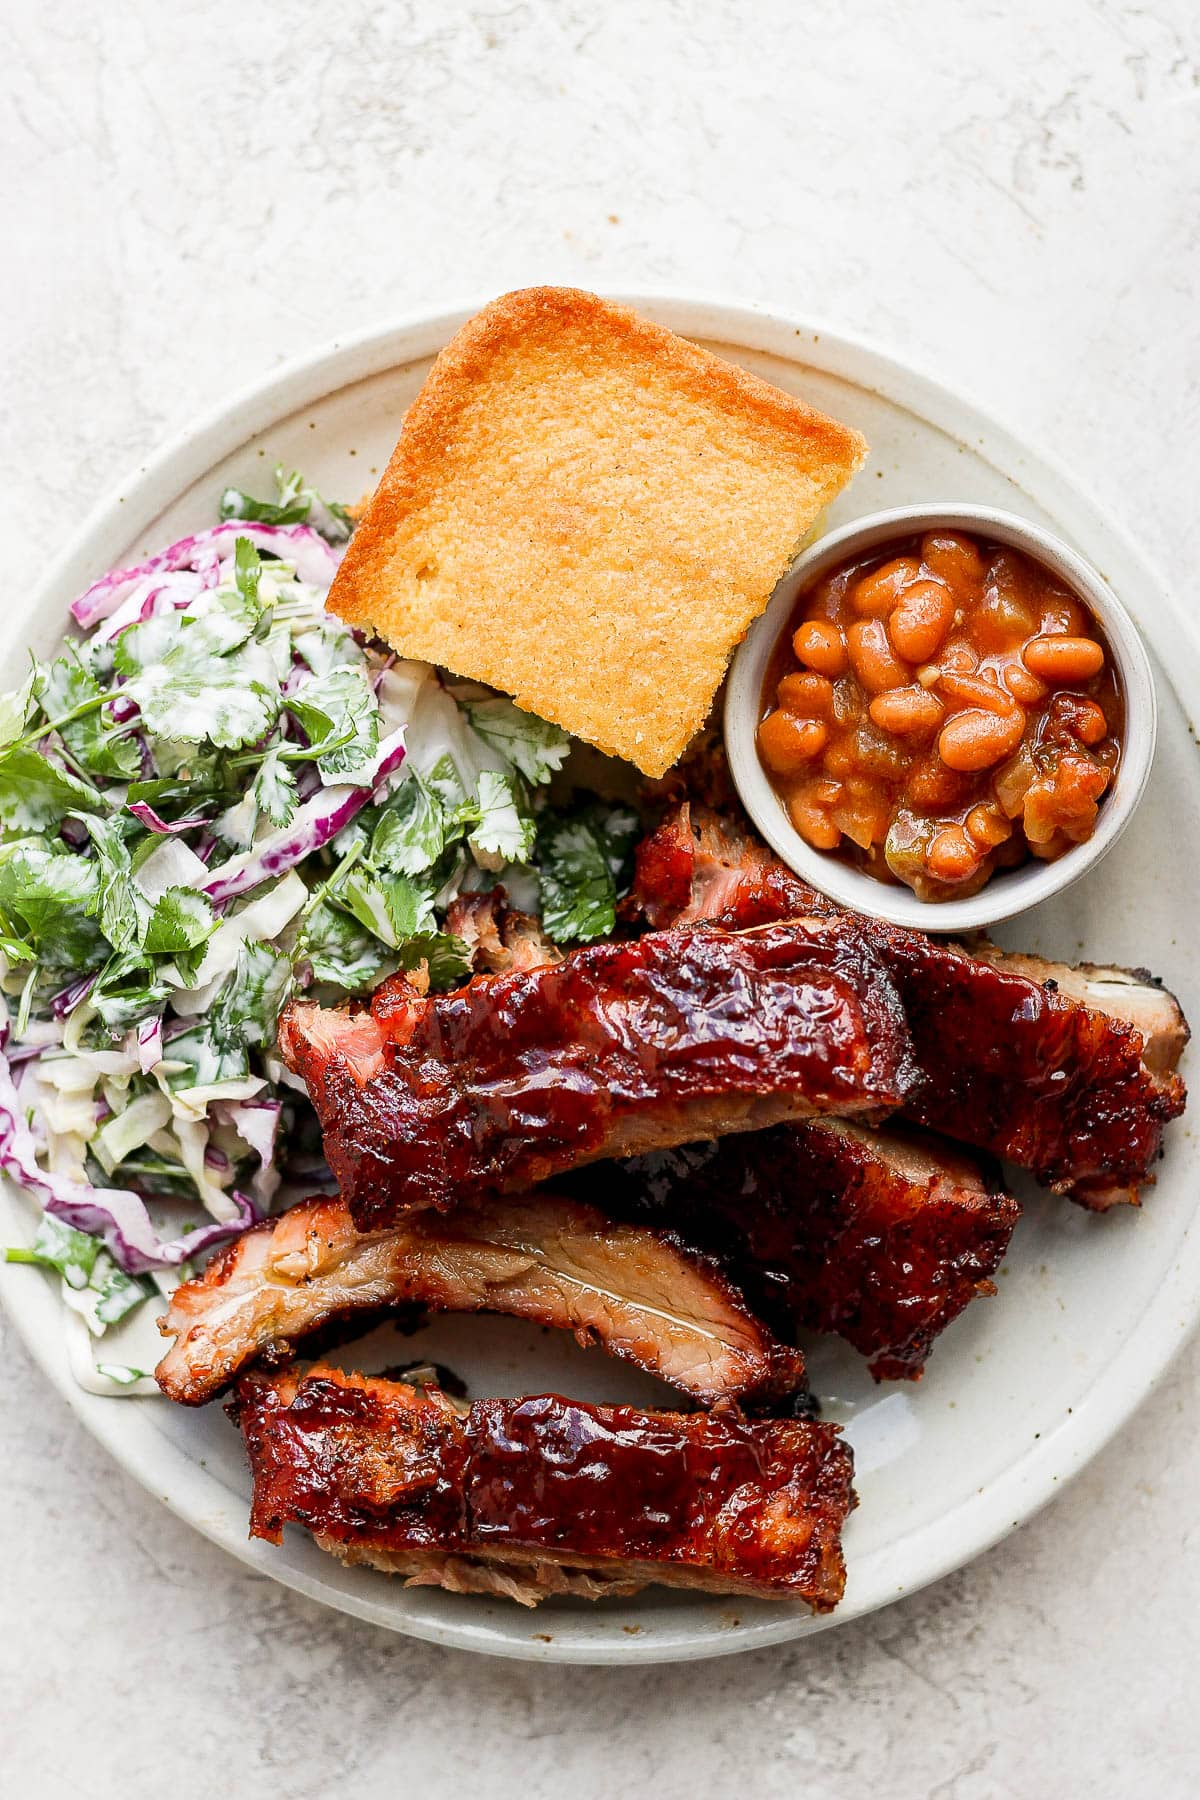 A plate filled with smoked baby back ribs, smoked beans, coleslaw and cornbread.